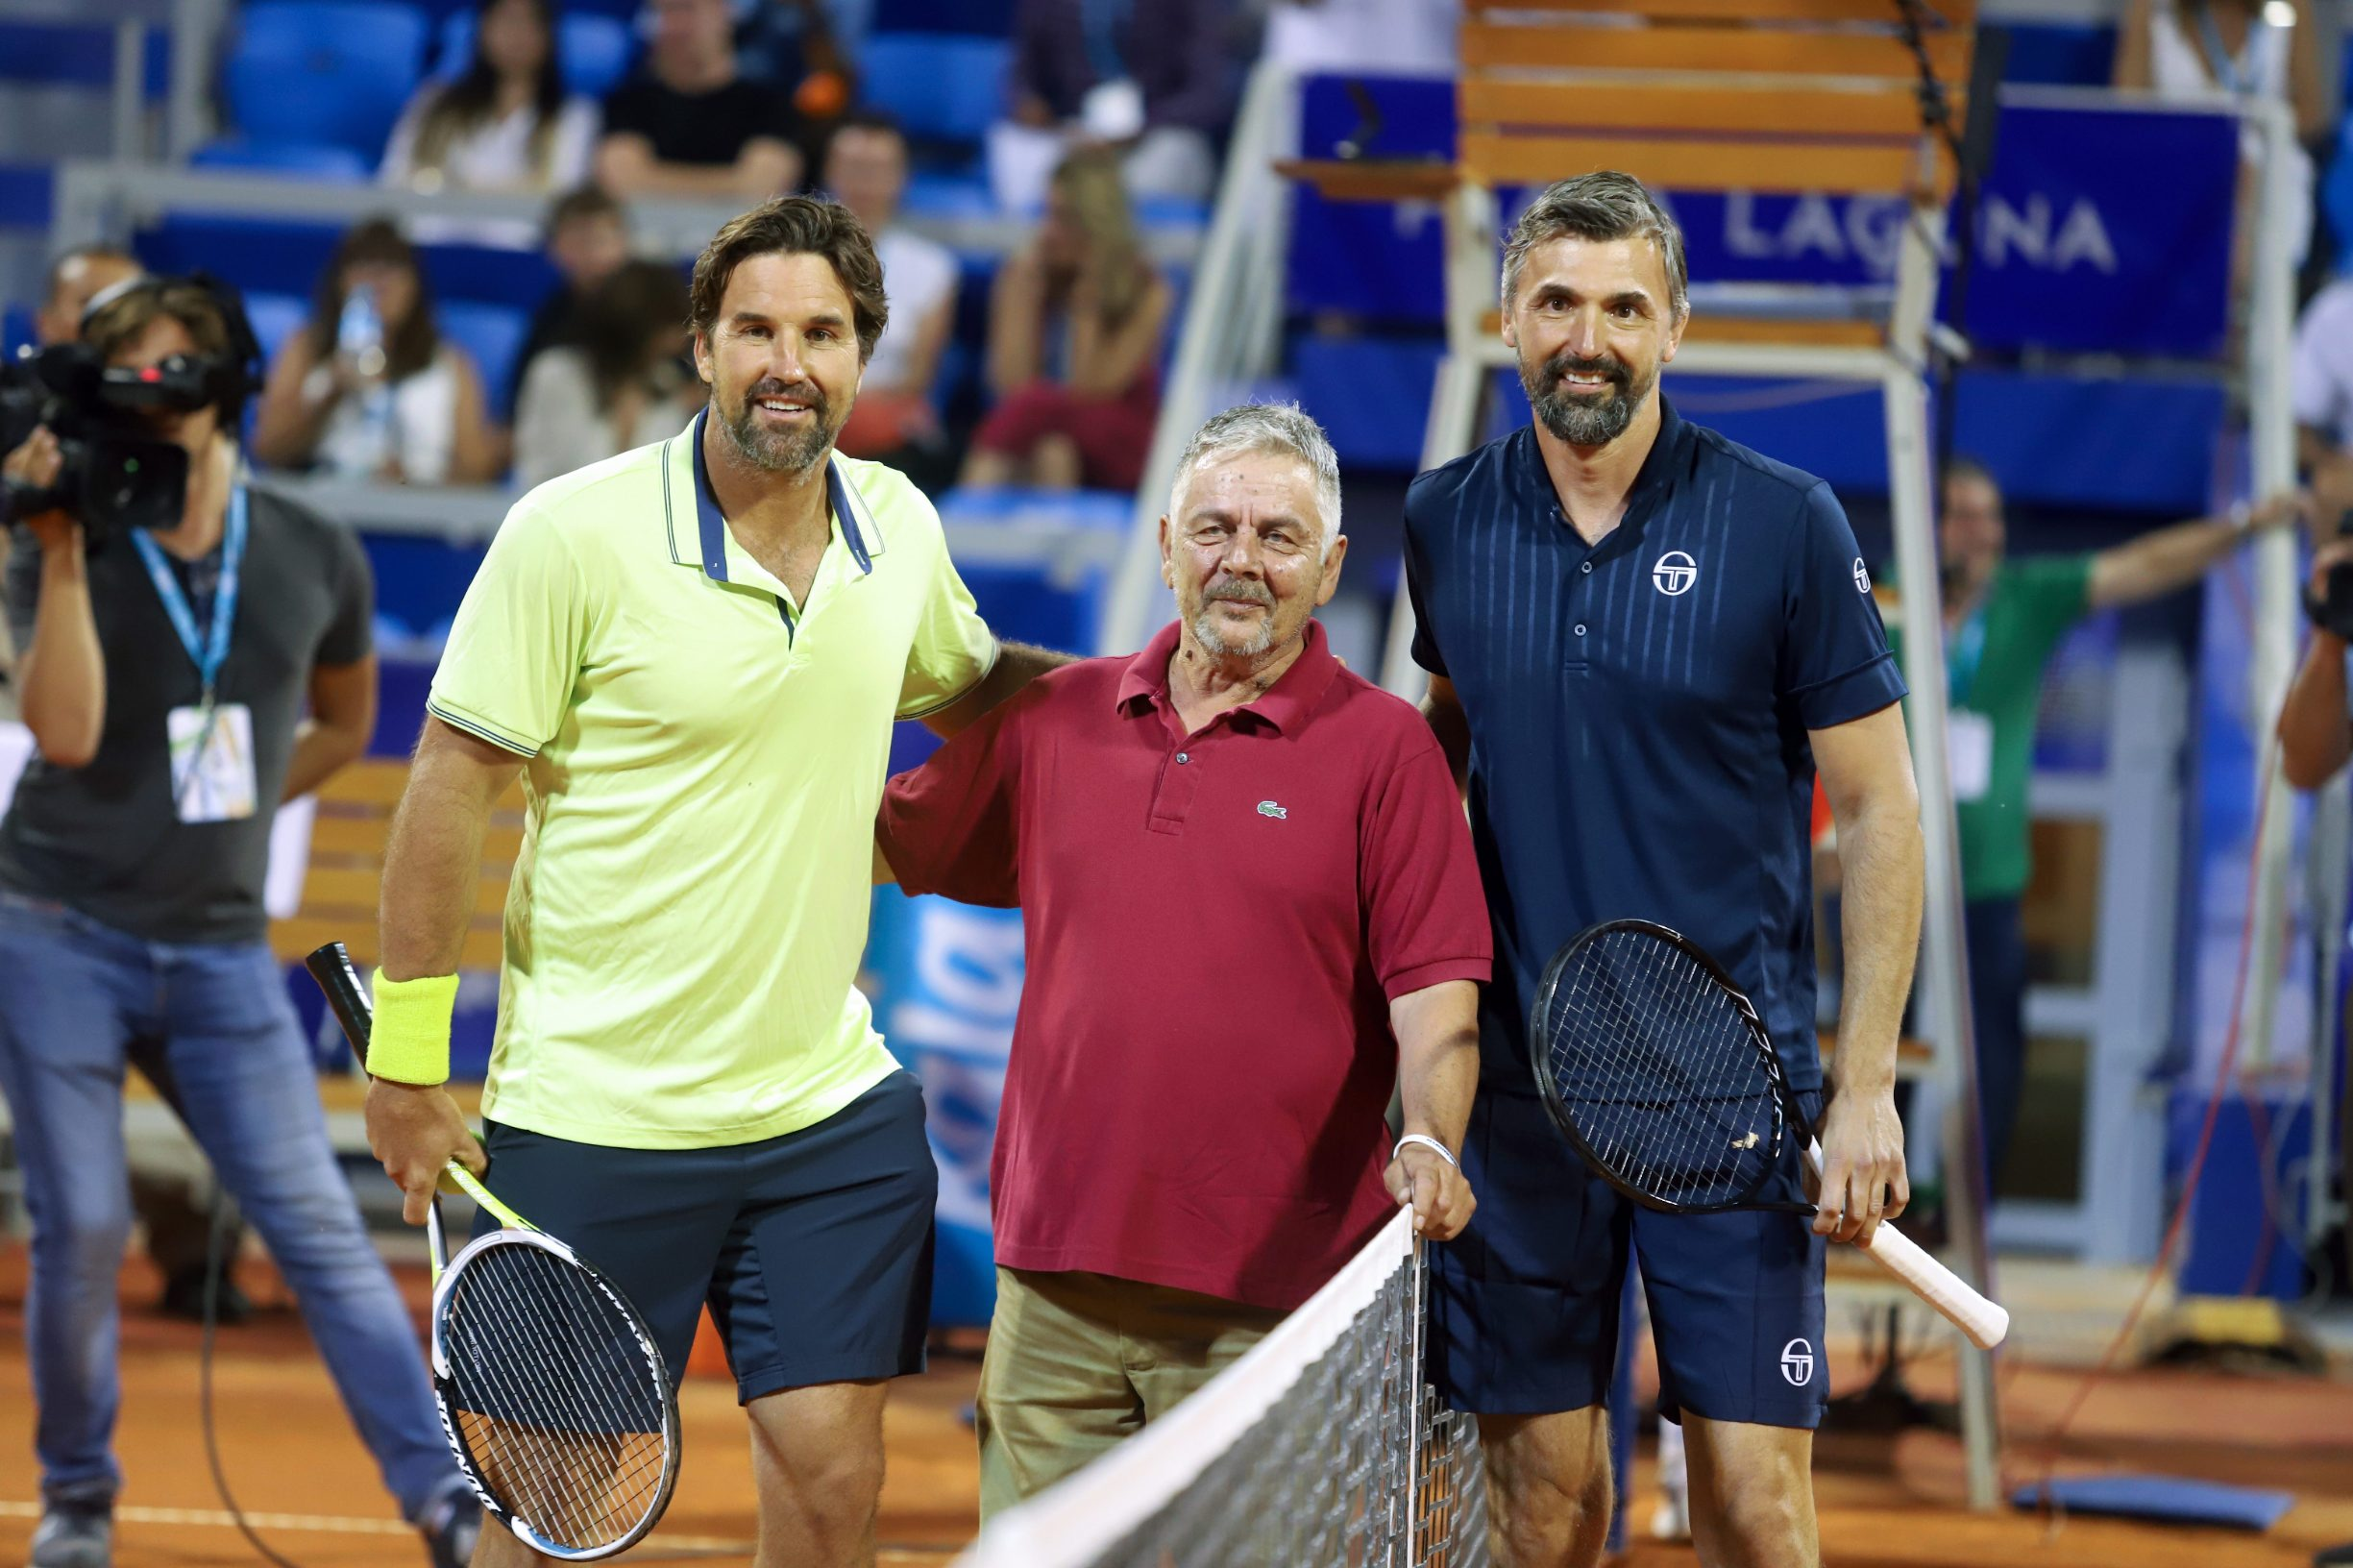 ivanisevic_rafter2-170719-1